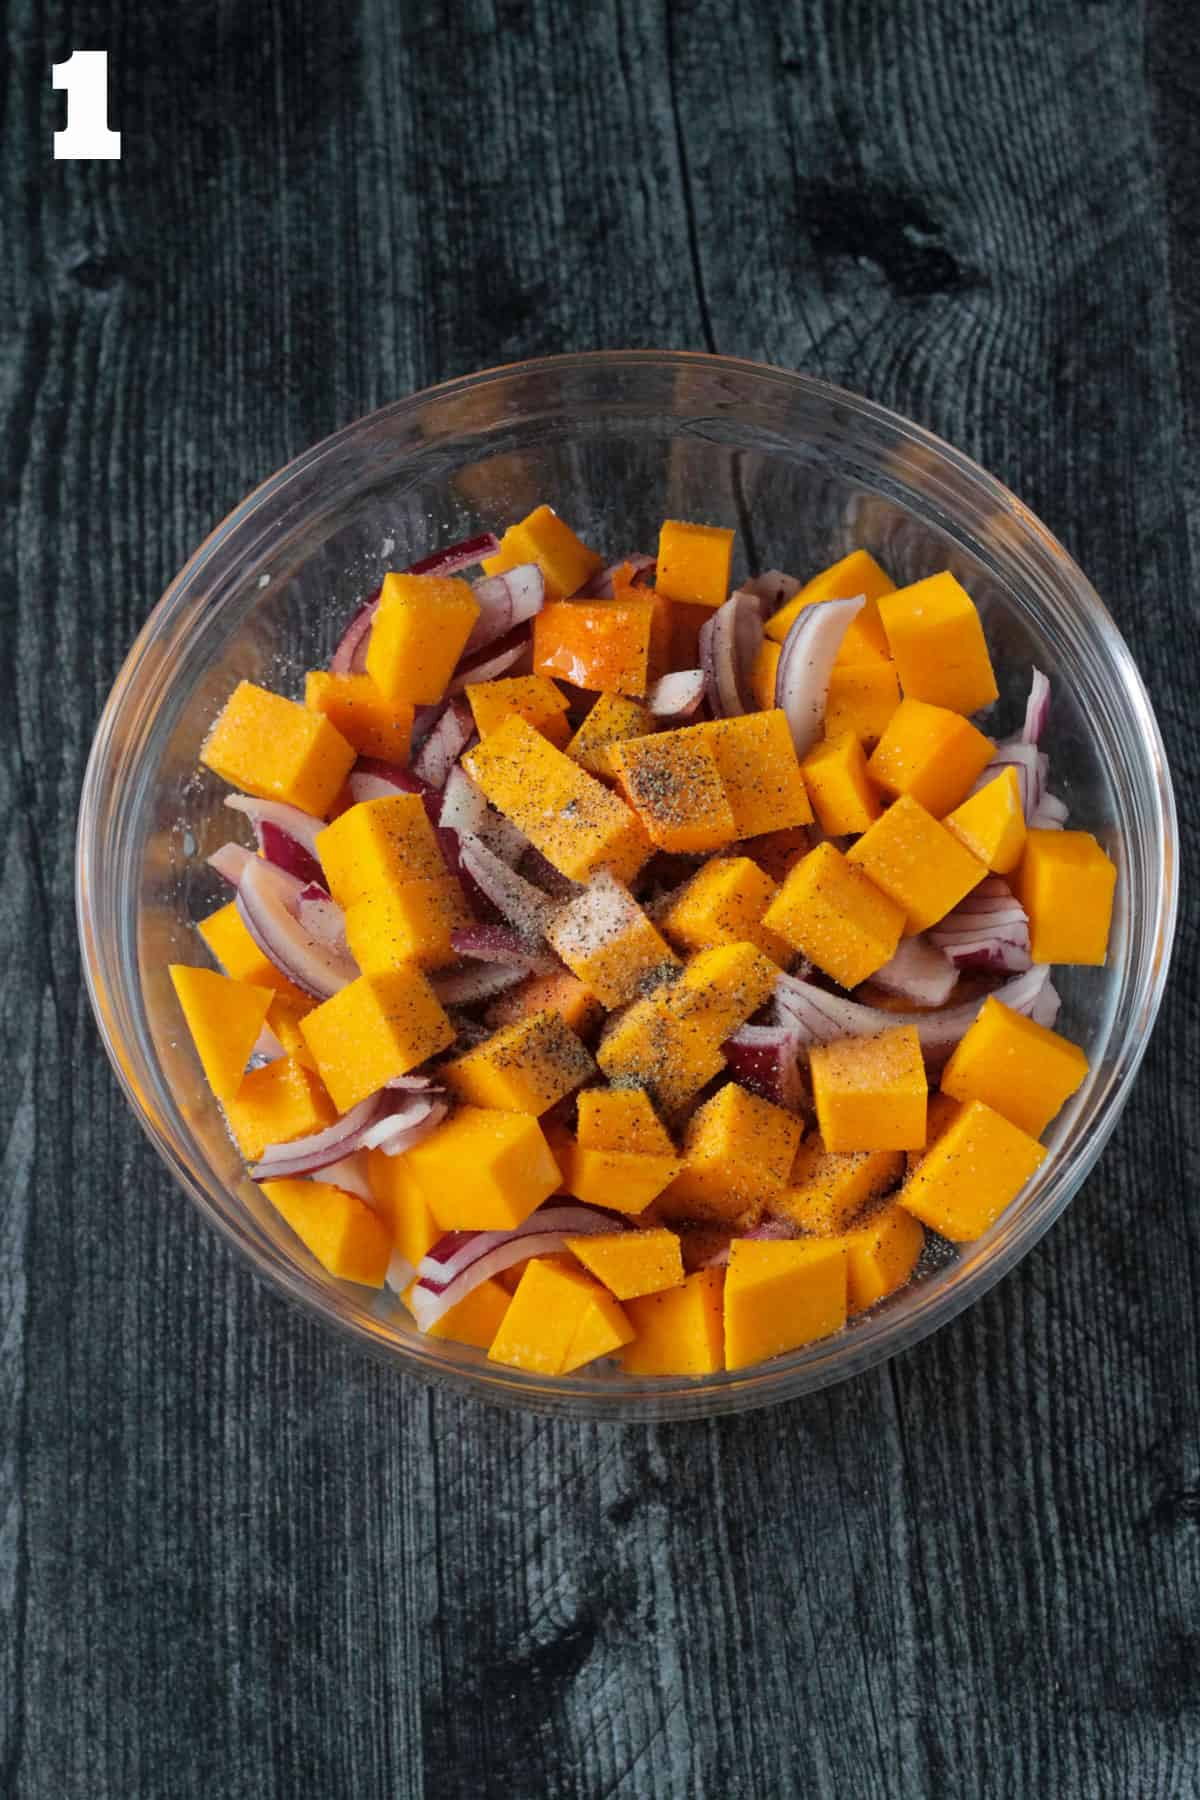 Raw chopped butternut squash and red onions with seasoning in a glass bowl.